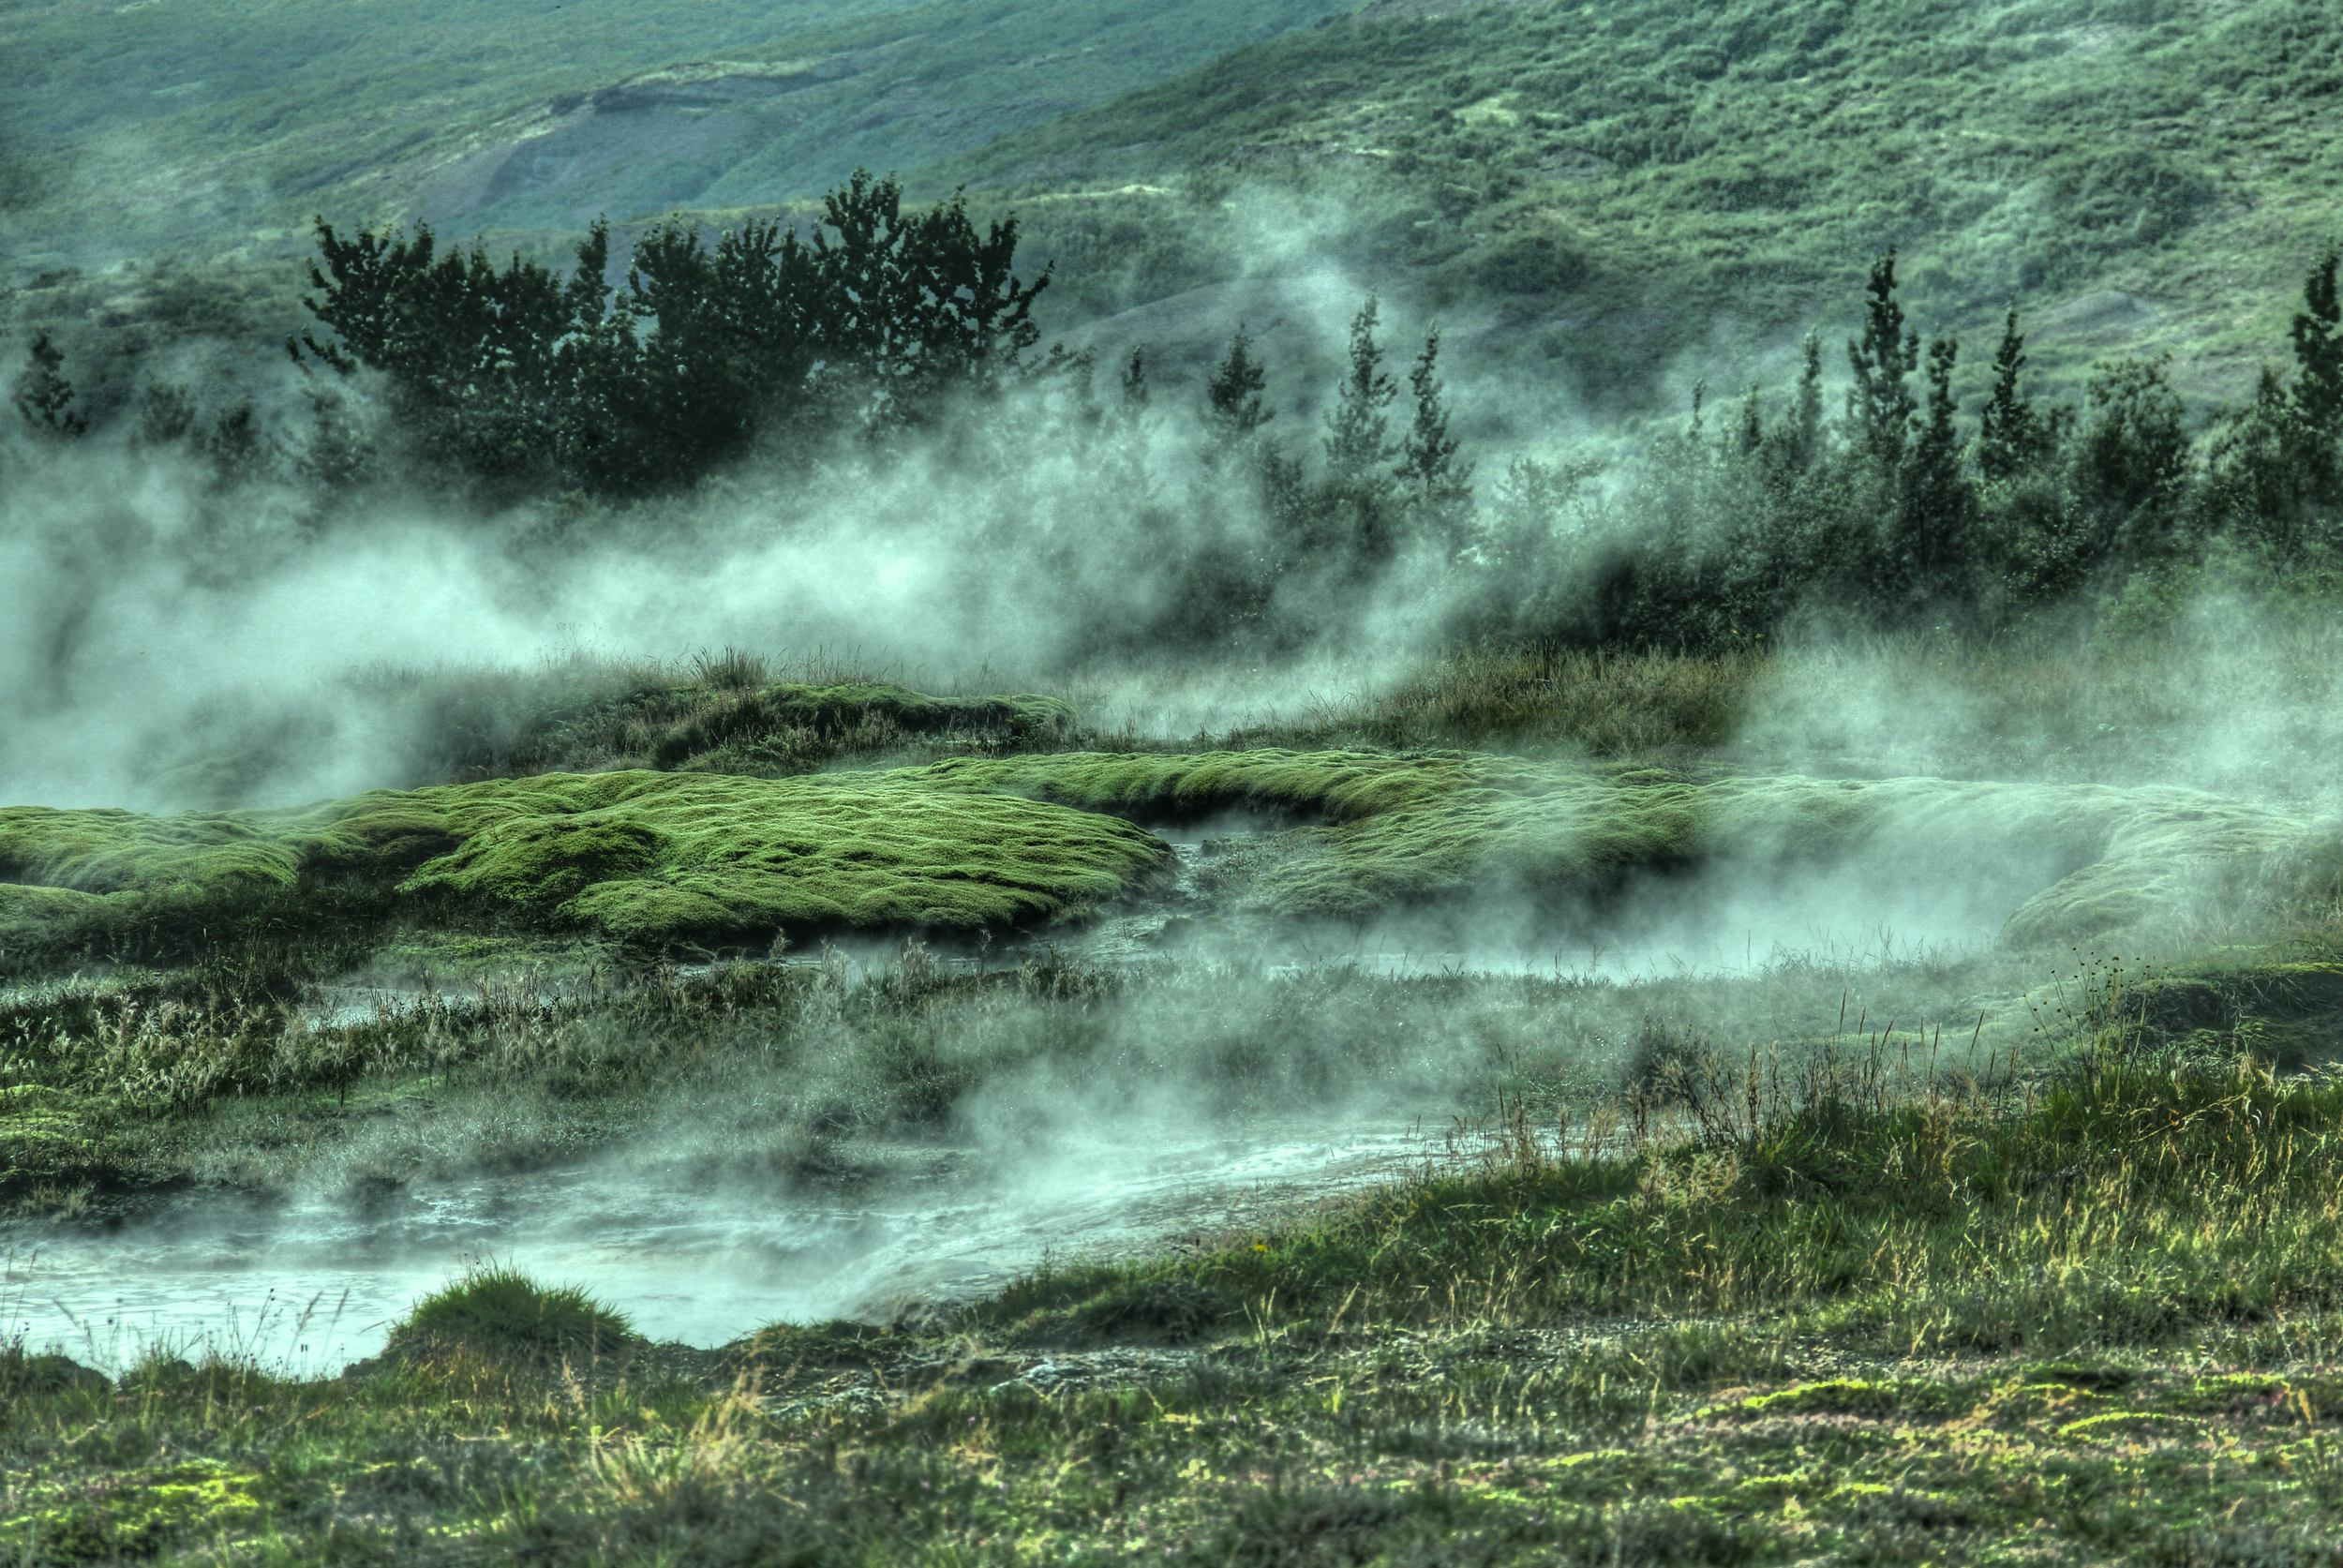 Thermal activity near Selfoss, Iceland. Photo by  Gian-Reto Tarnutzer